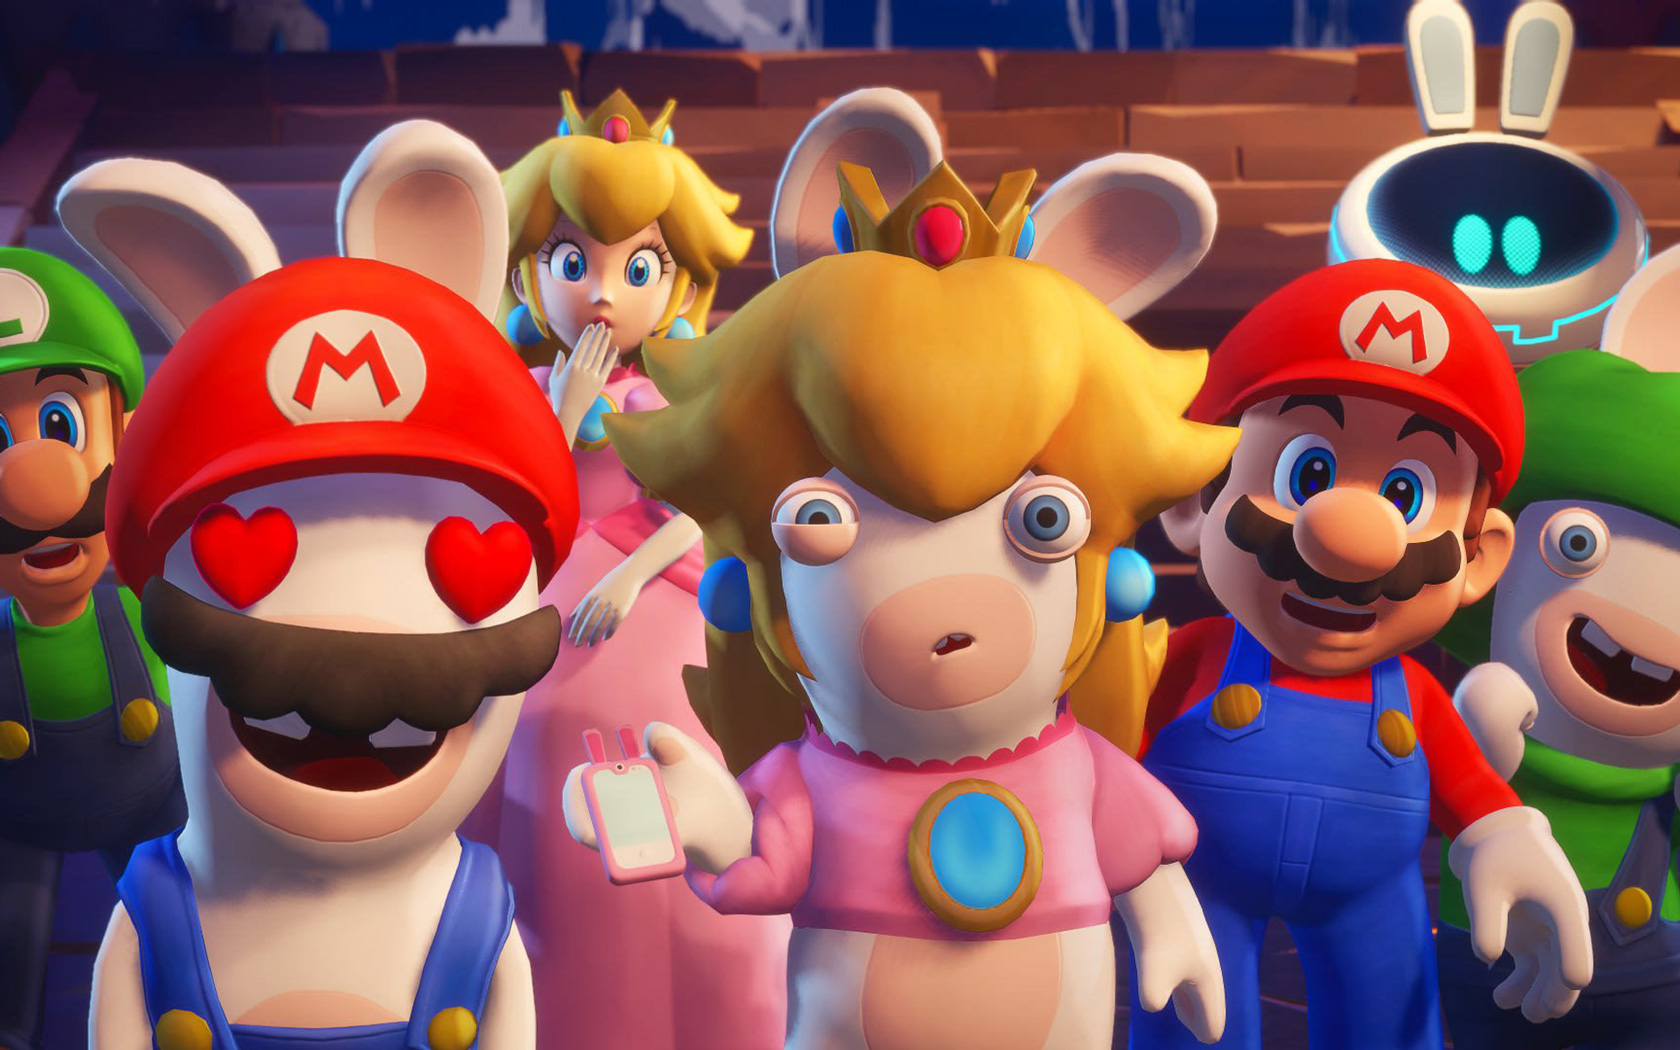 Free Mario + Rabbids: Sparks of Hope Wallpaper in 1680x1050